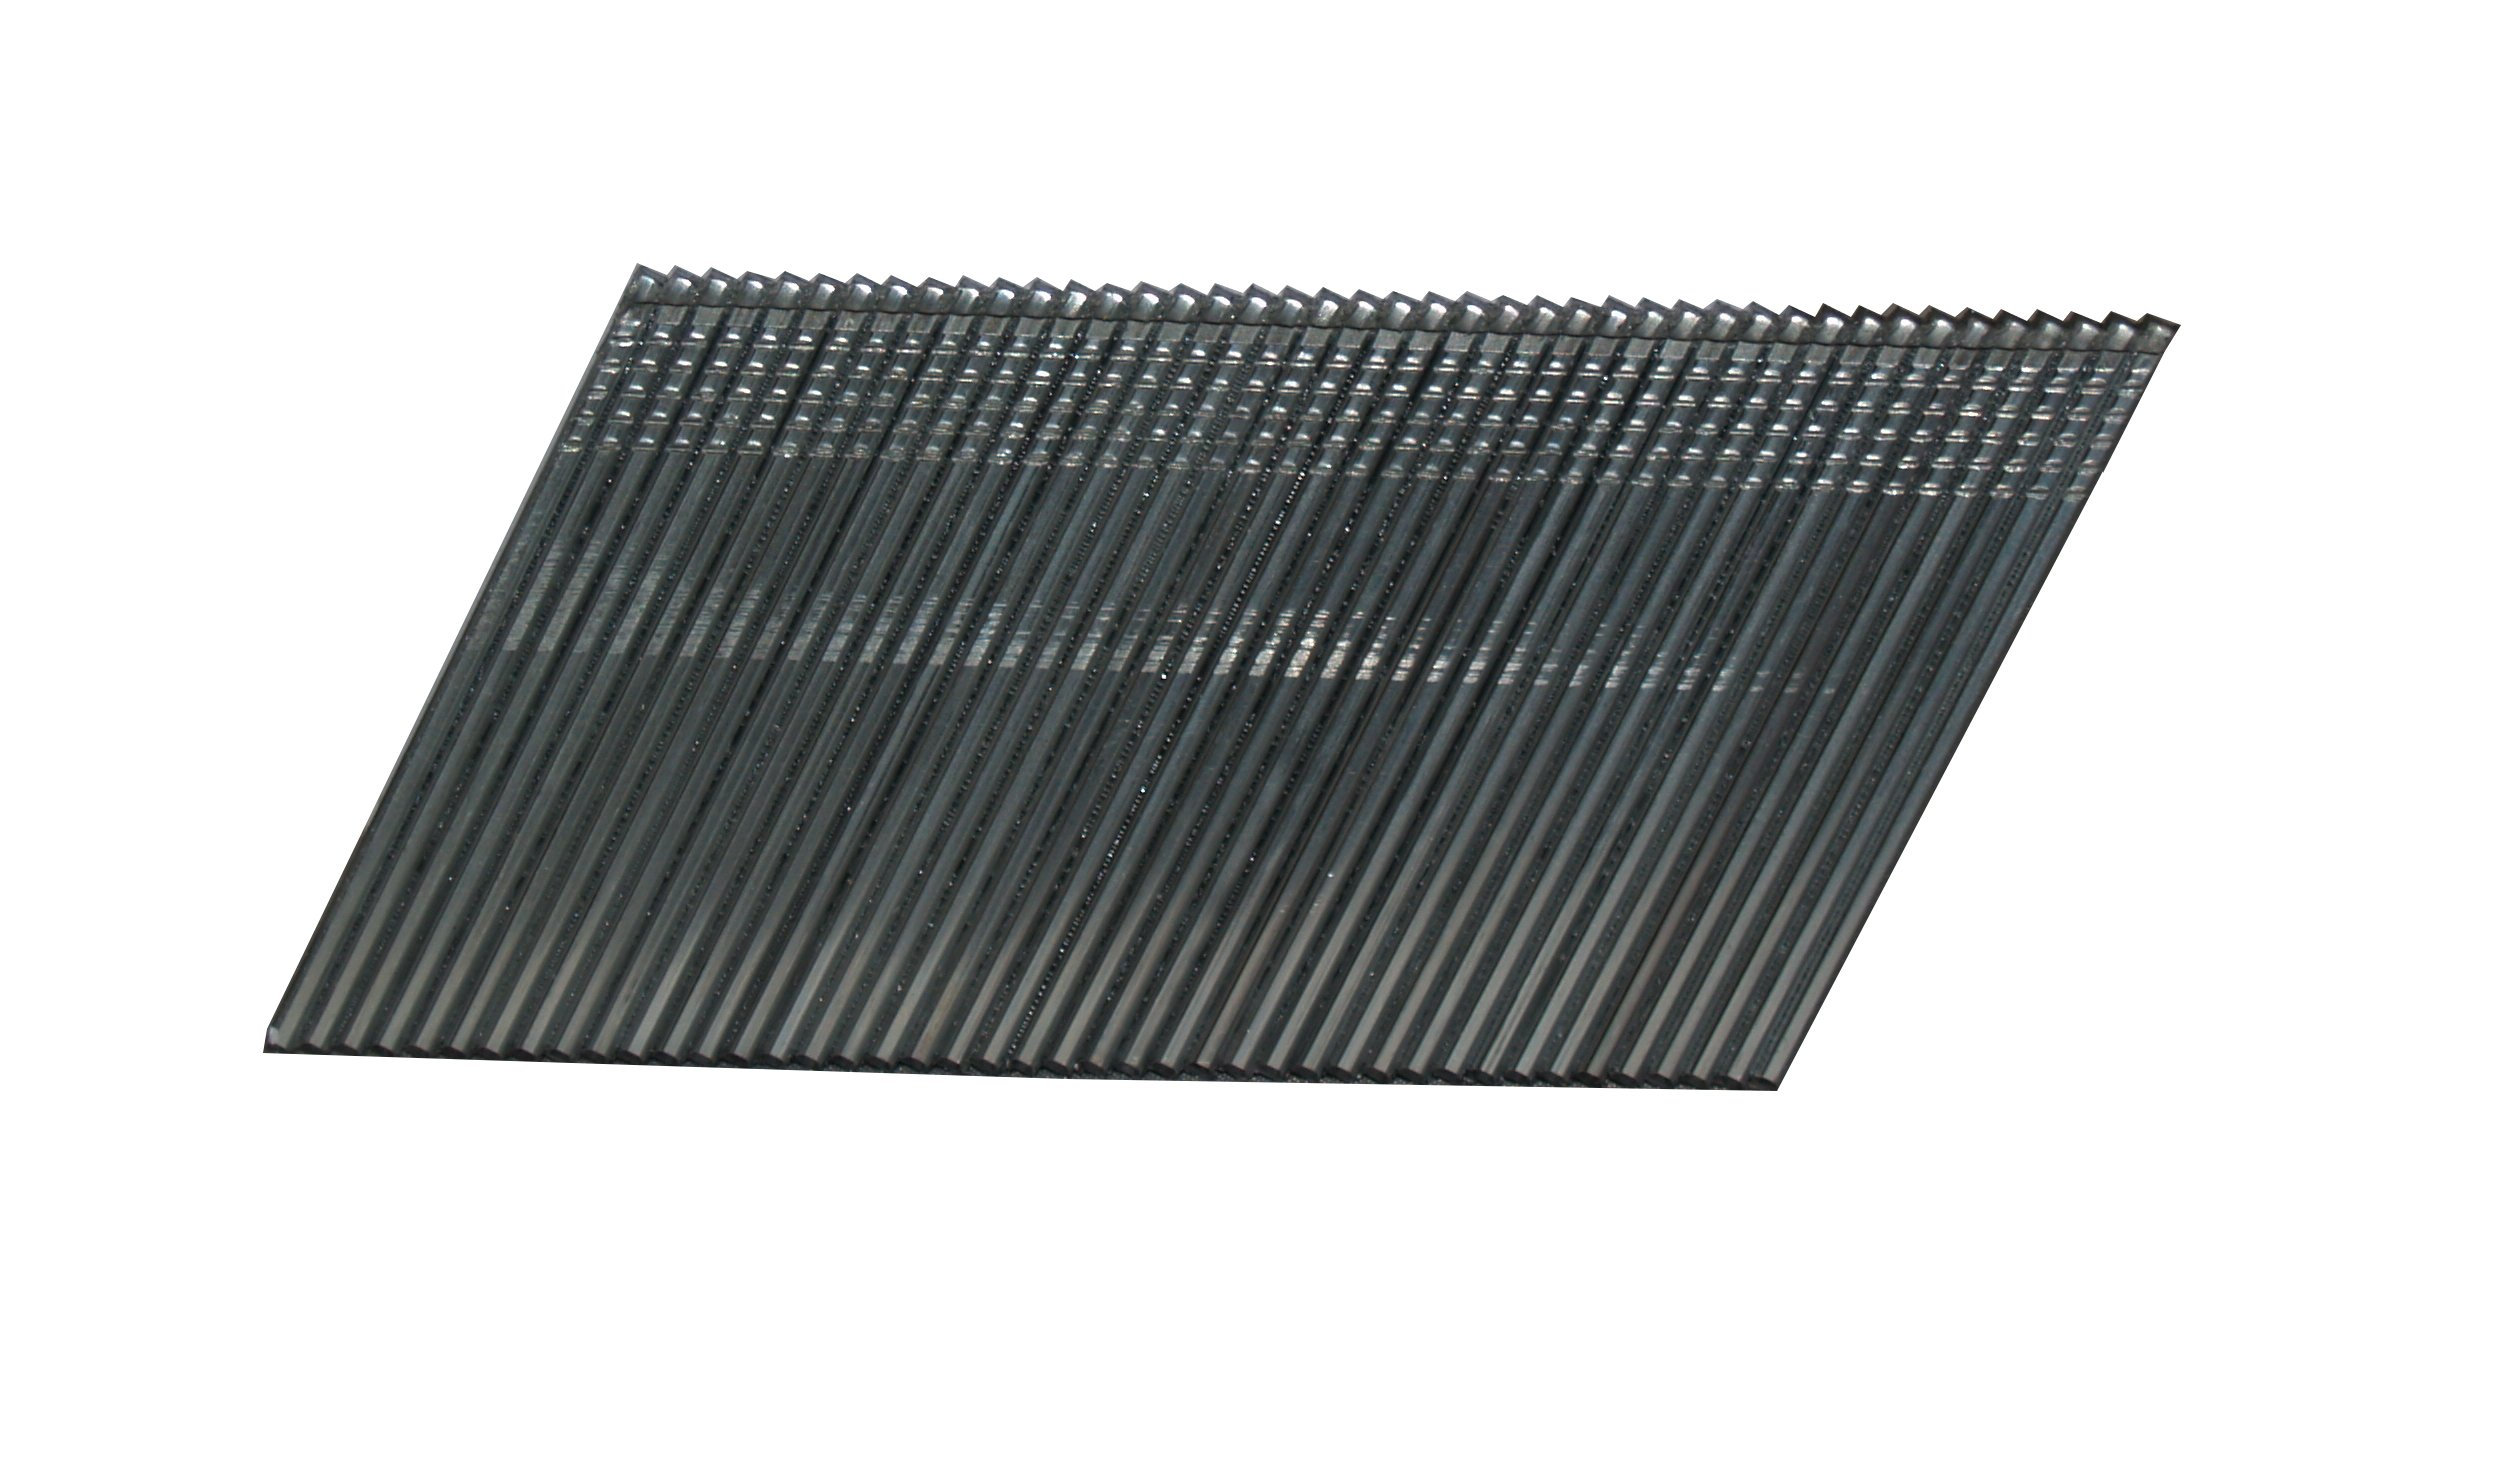 Simpson Strong Tie S16N200PFB 2-Inch 16 Gauge Angled Finish Nails Similar to Paslode and Dewalt Style In 304 Stainless Steel, 500 Per Box